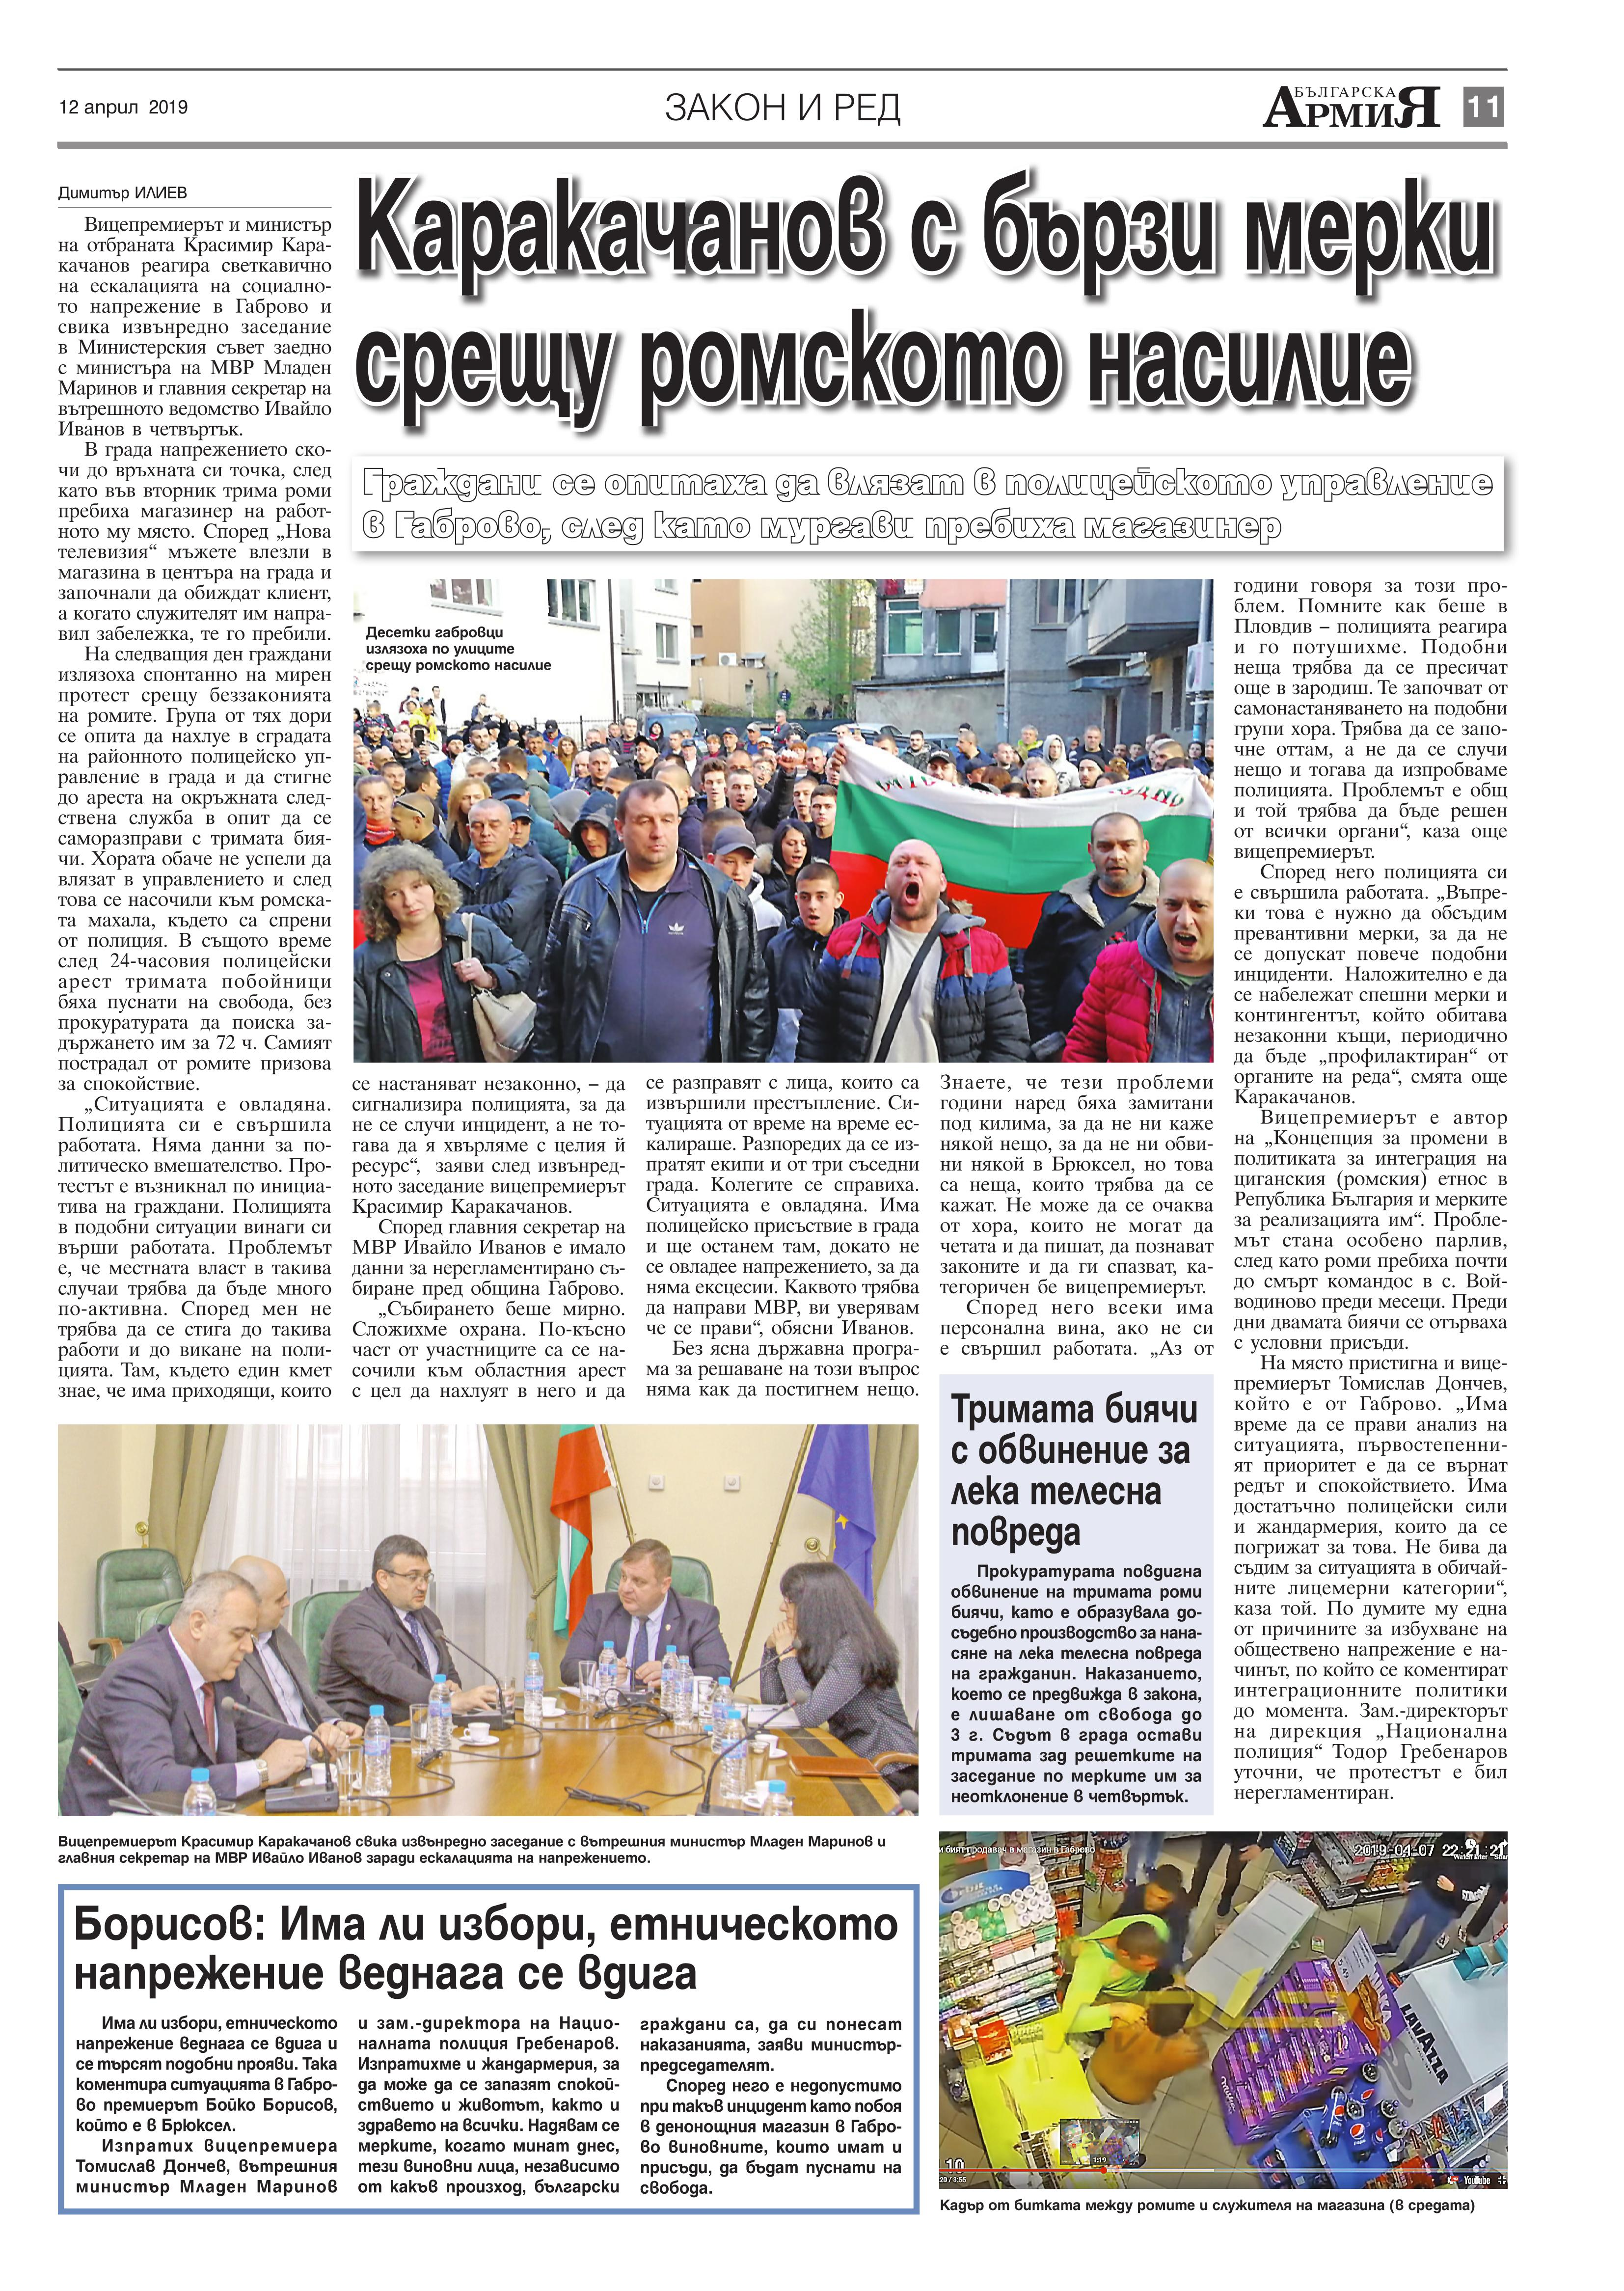 https://armymedia.bg/wp-content/uploads/2015/06/11.page1_-91.jpg